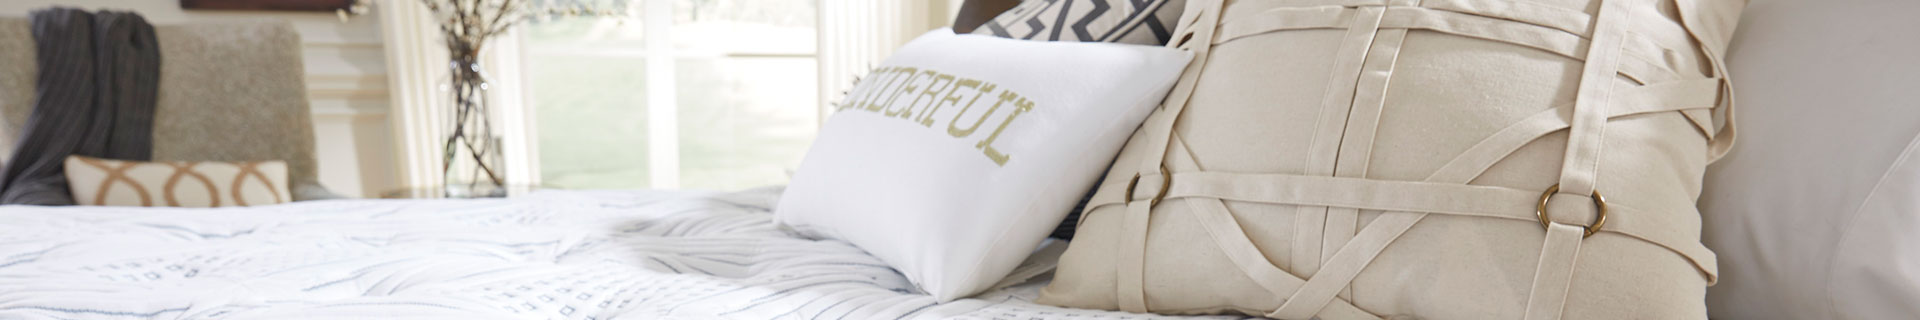 Bed with throw pillow.